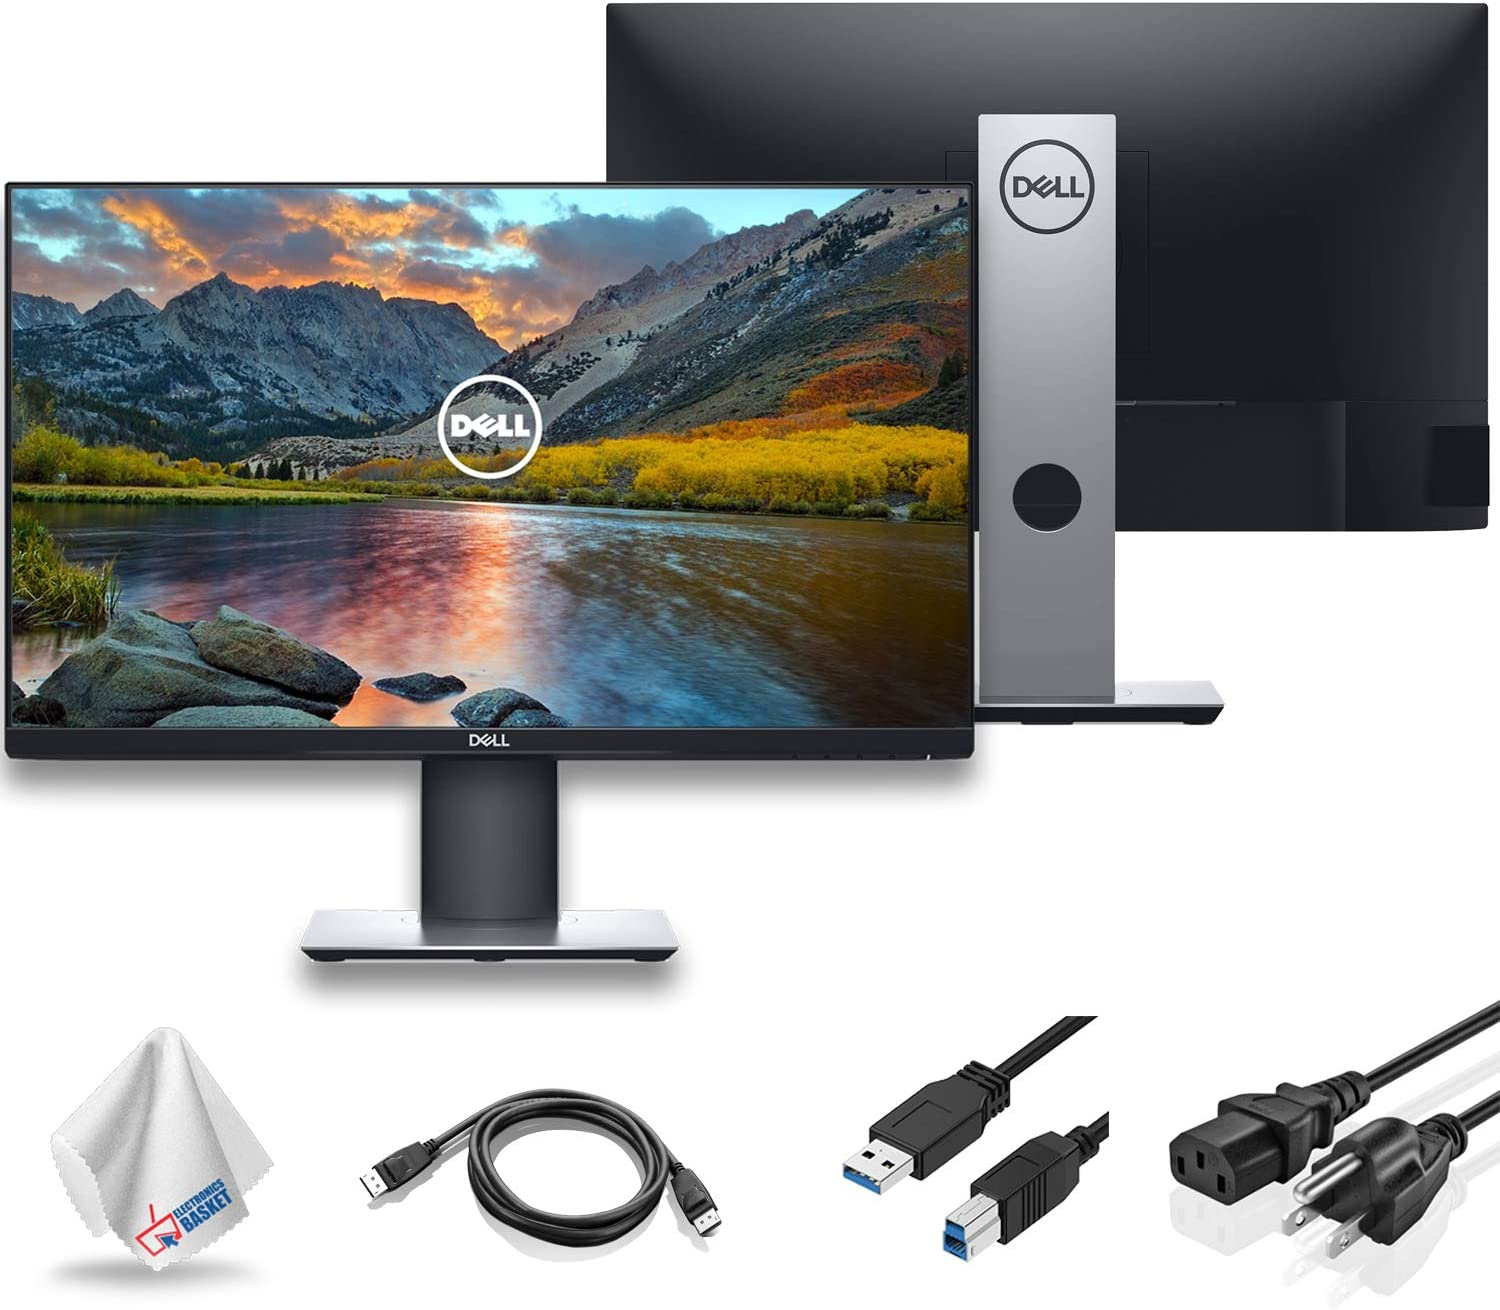 "Dell P2719H 27"" 16:9 Ultrathin Bezel IPS Monitor (P2719H) with Microfiber Cleaning Cloth - 1 - Pack"